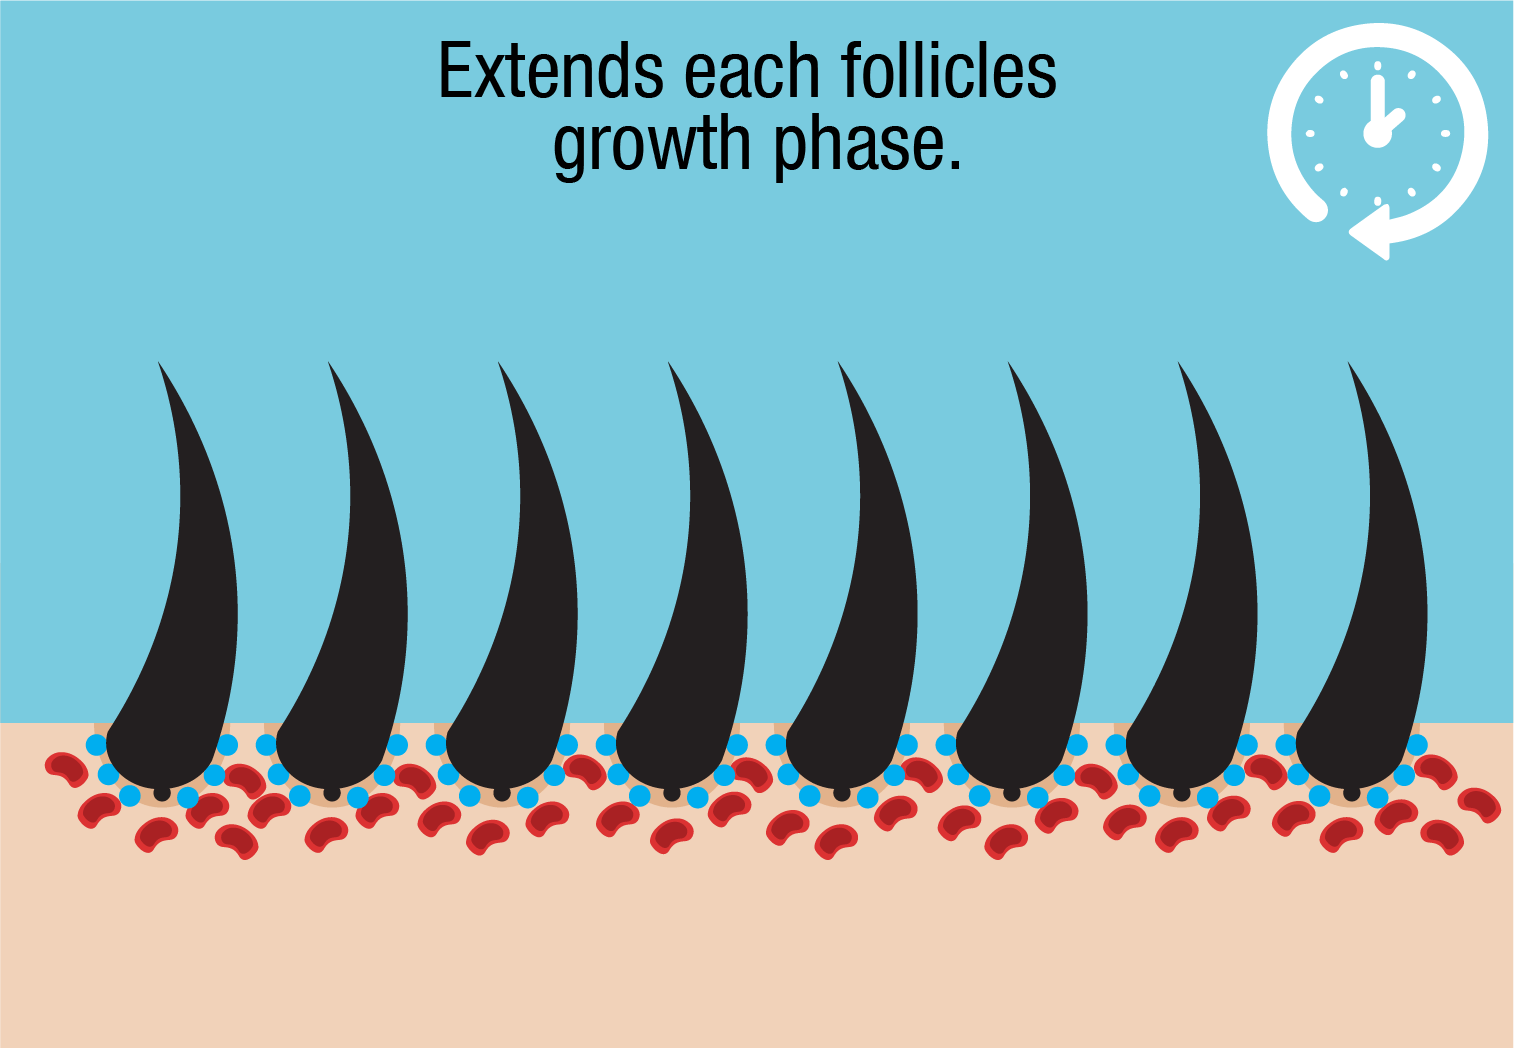 growth phase extended